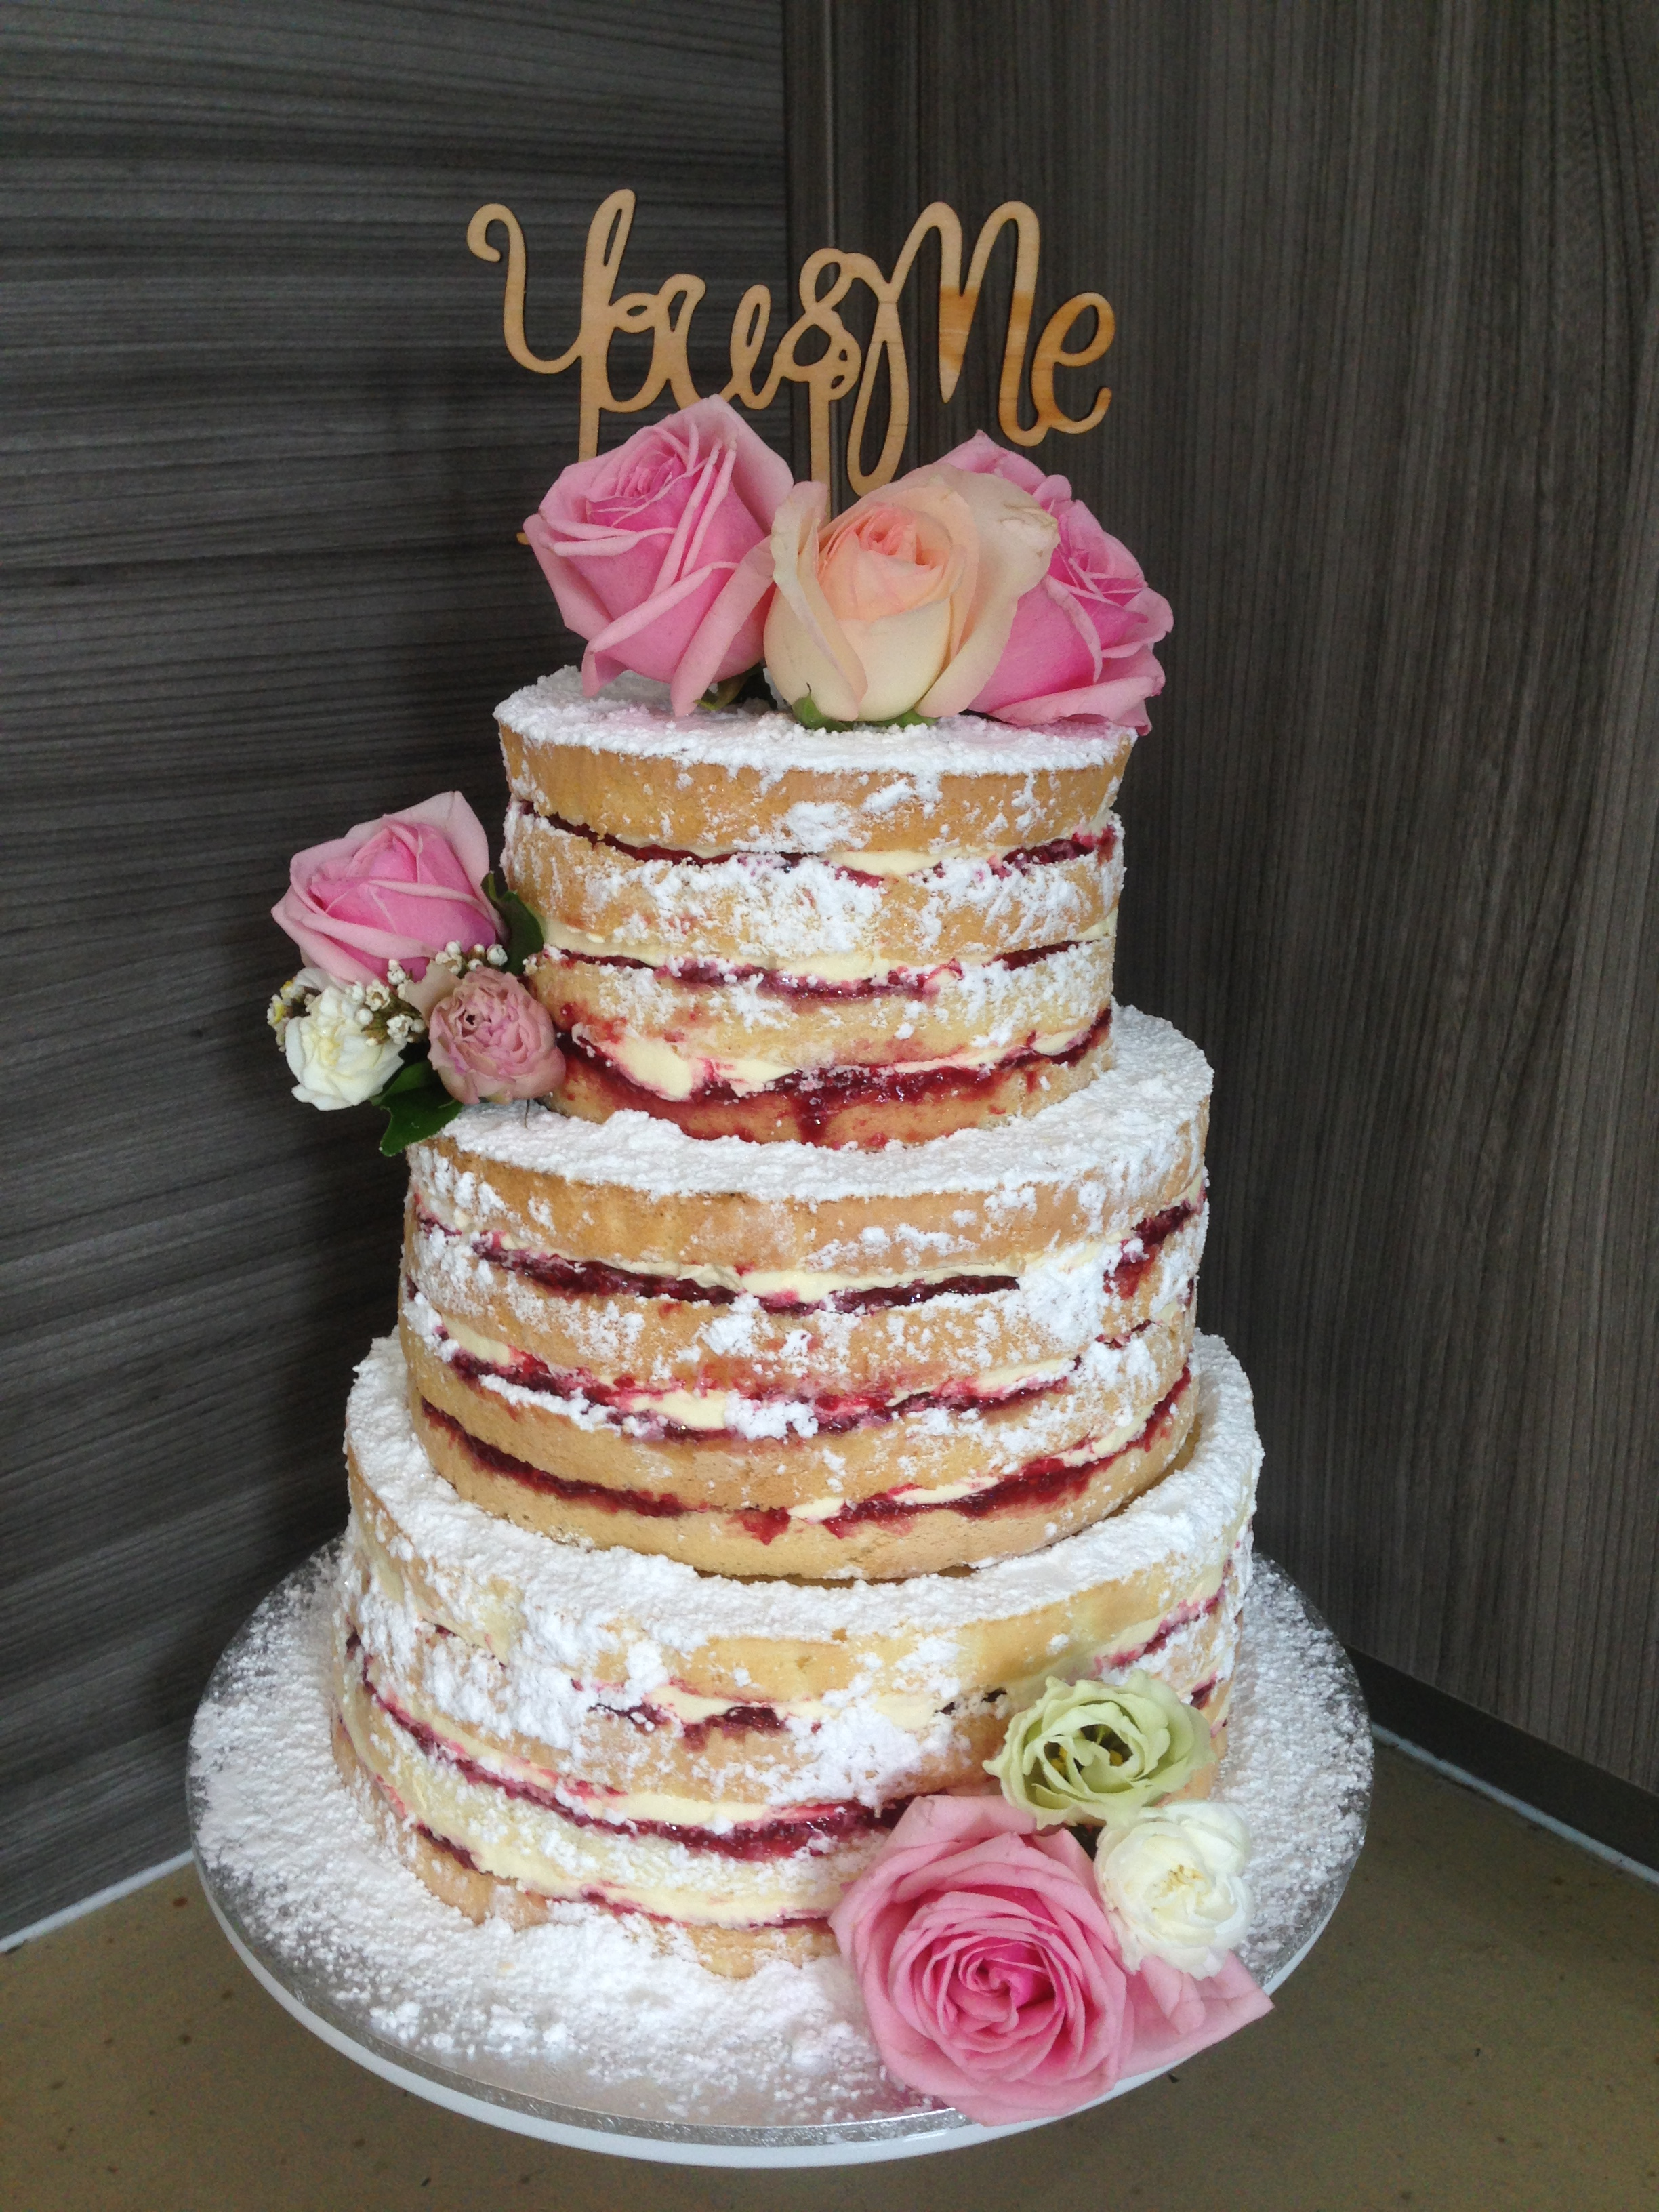 Vanilla Pod 3 Tier Naked Cake with fresh roses by boquet boutique.JPG